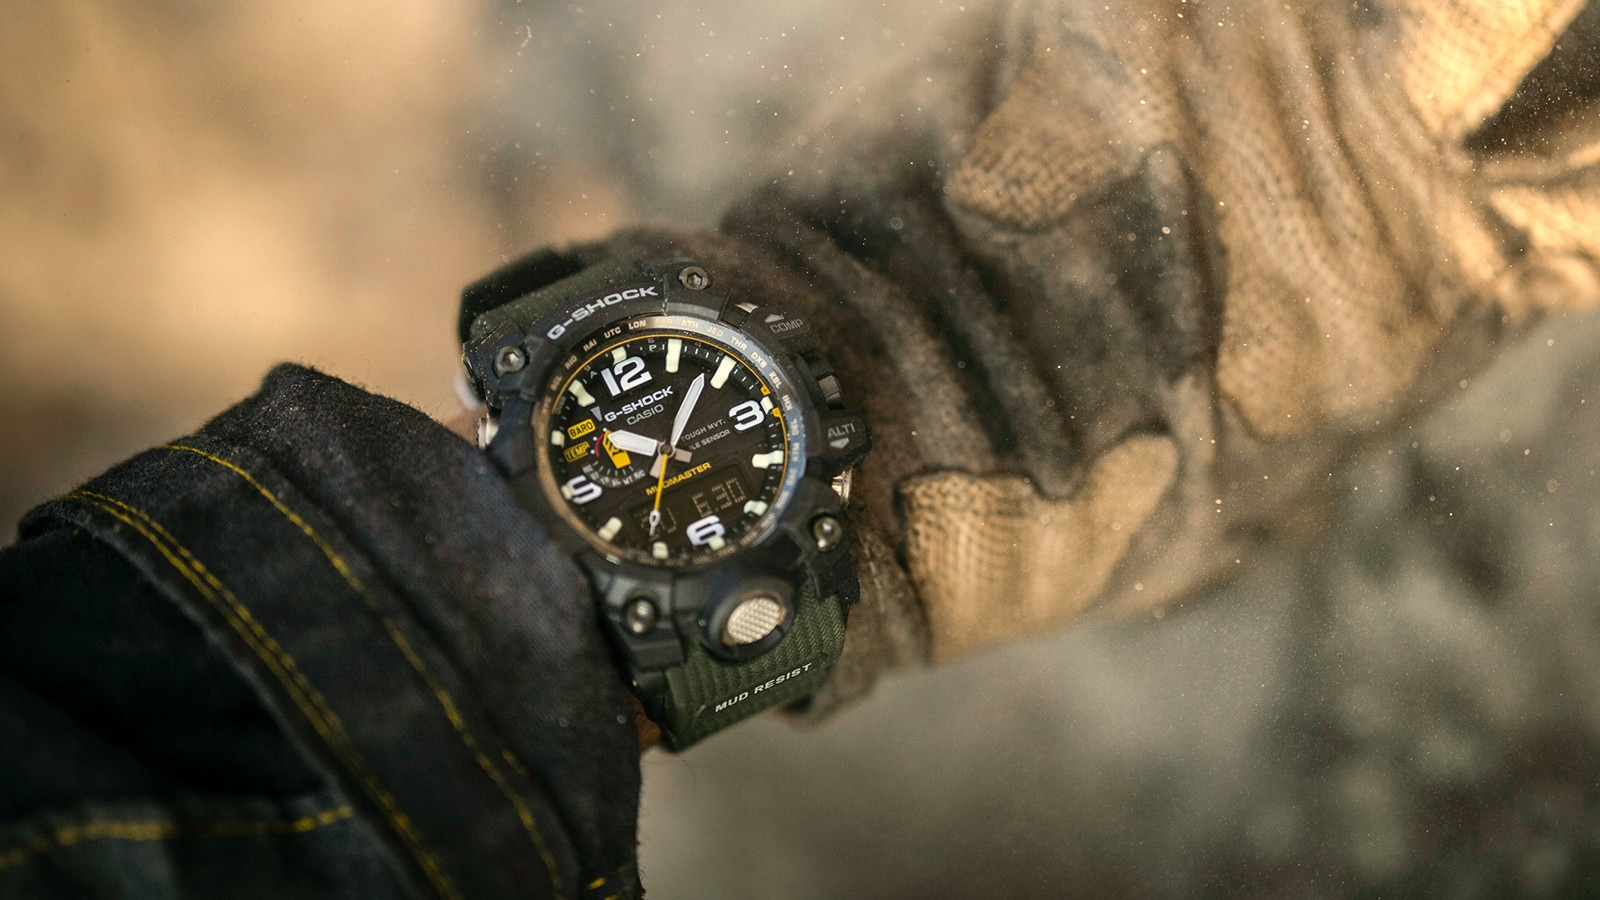 timeless design 4f69f 2eae9 G-SHOCK】GWG-1000-1AJFがロングセラーモデルな理由♪ | G-STYLE ...